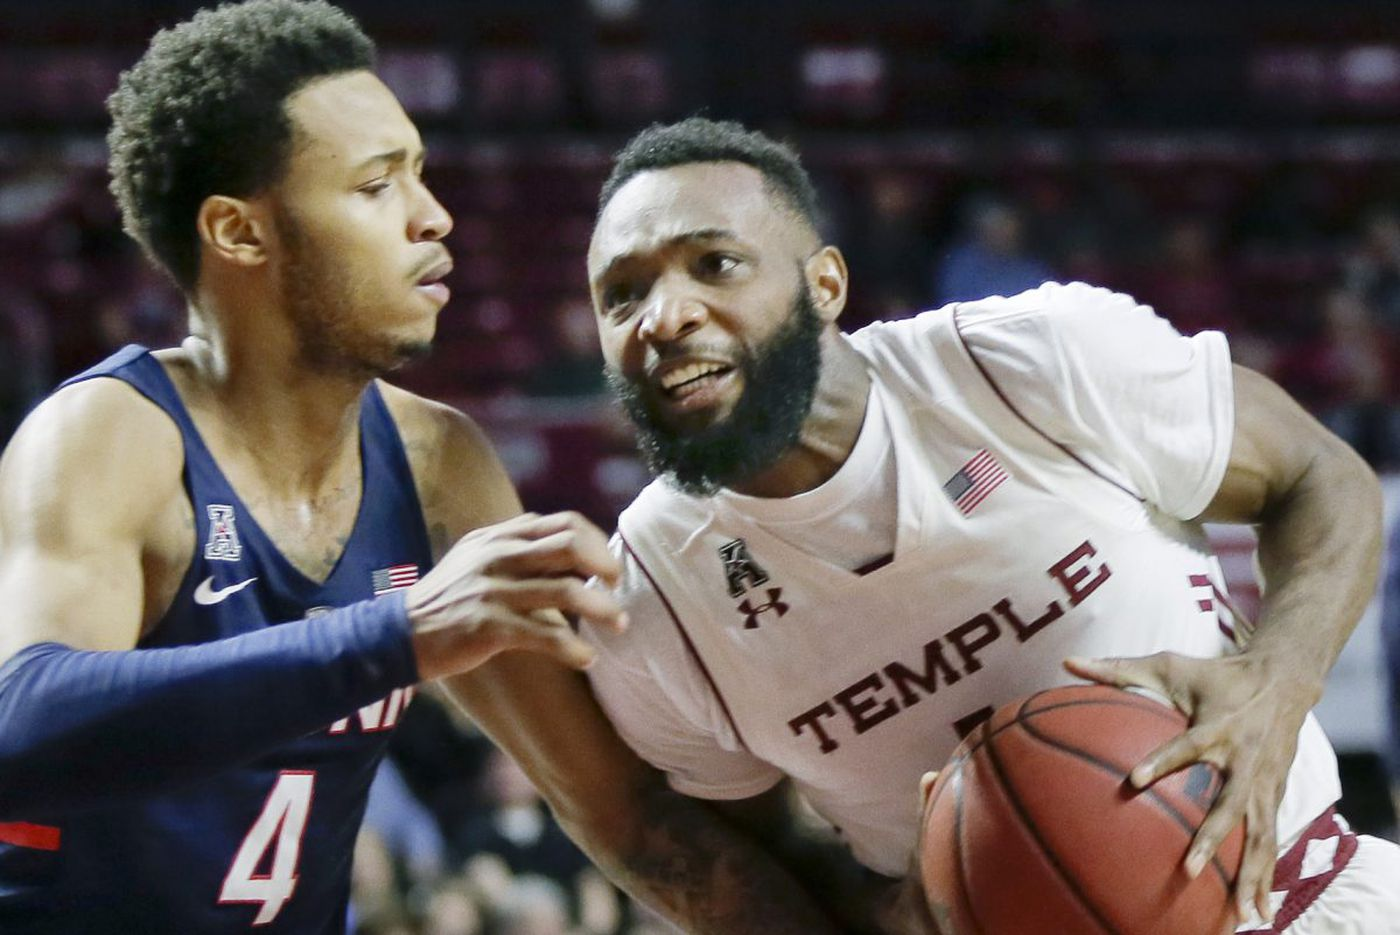 Temple bounces back with 85-57 rout of UConn